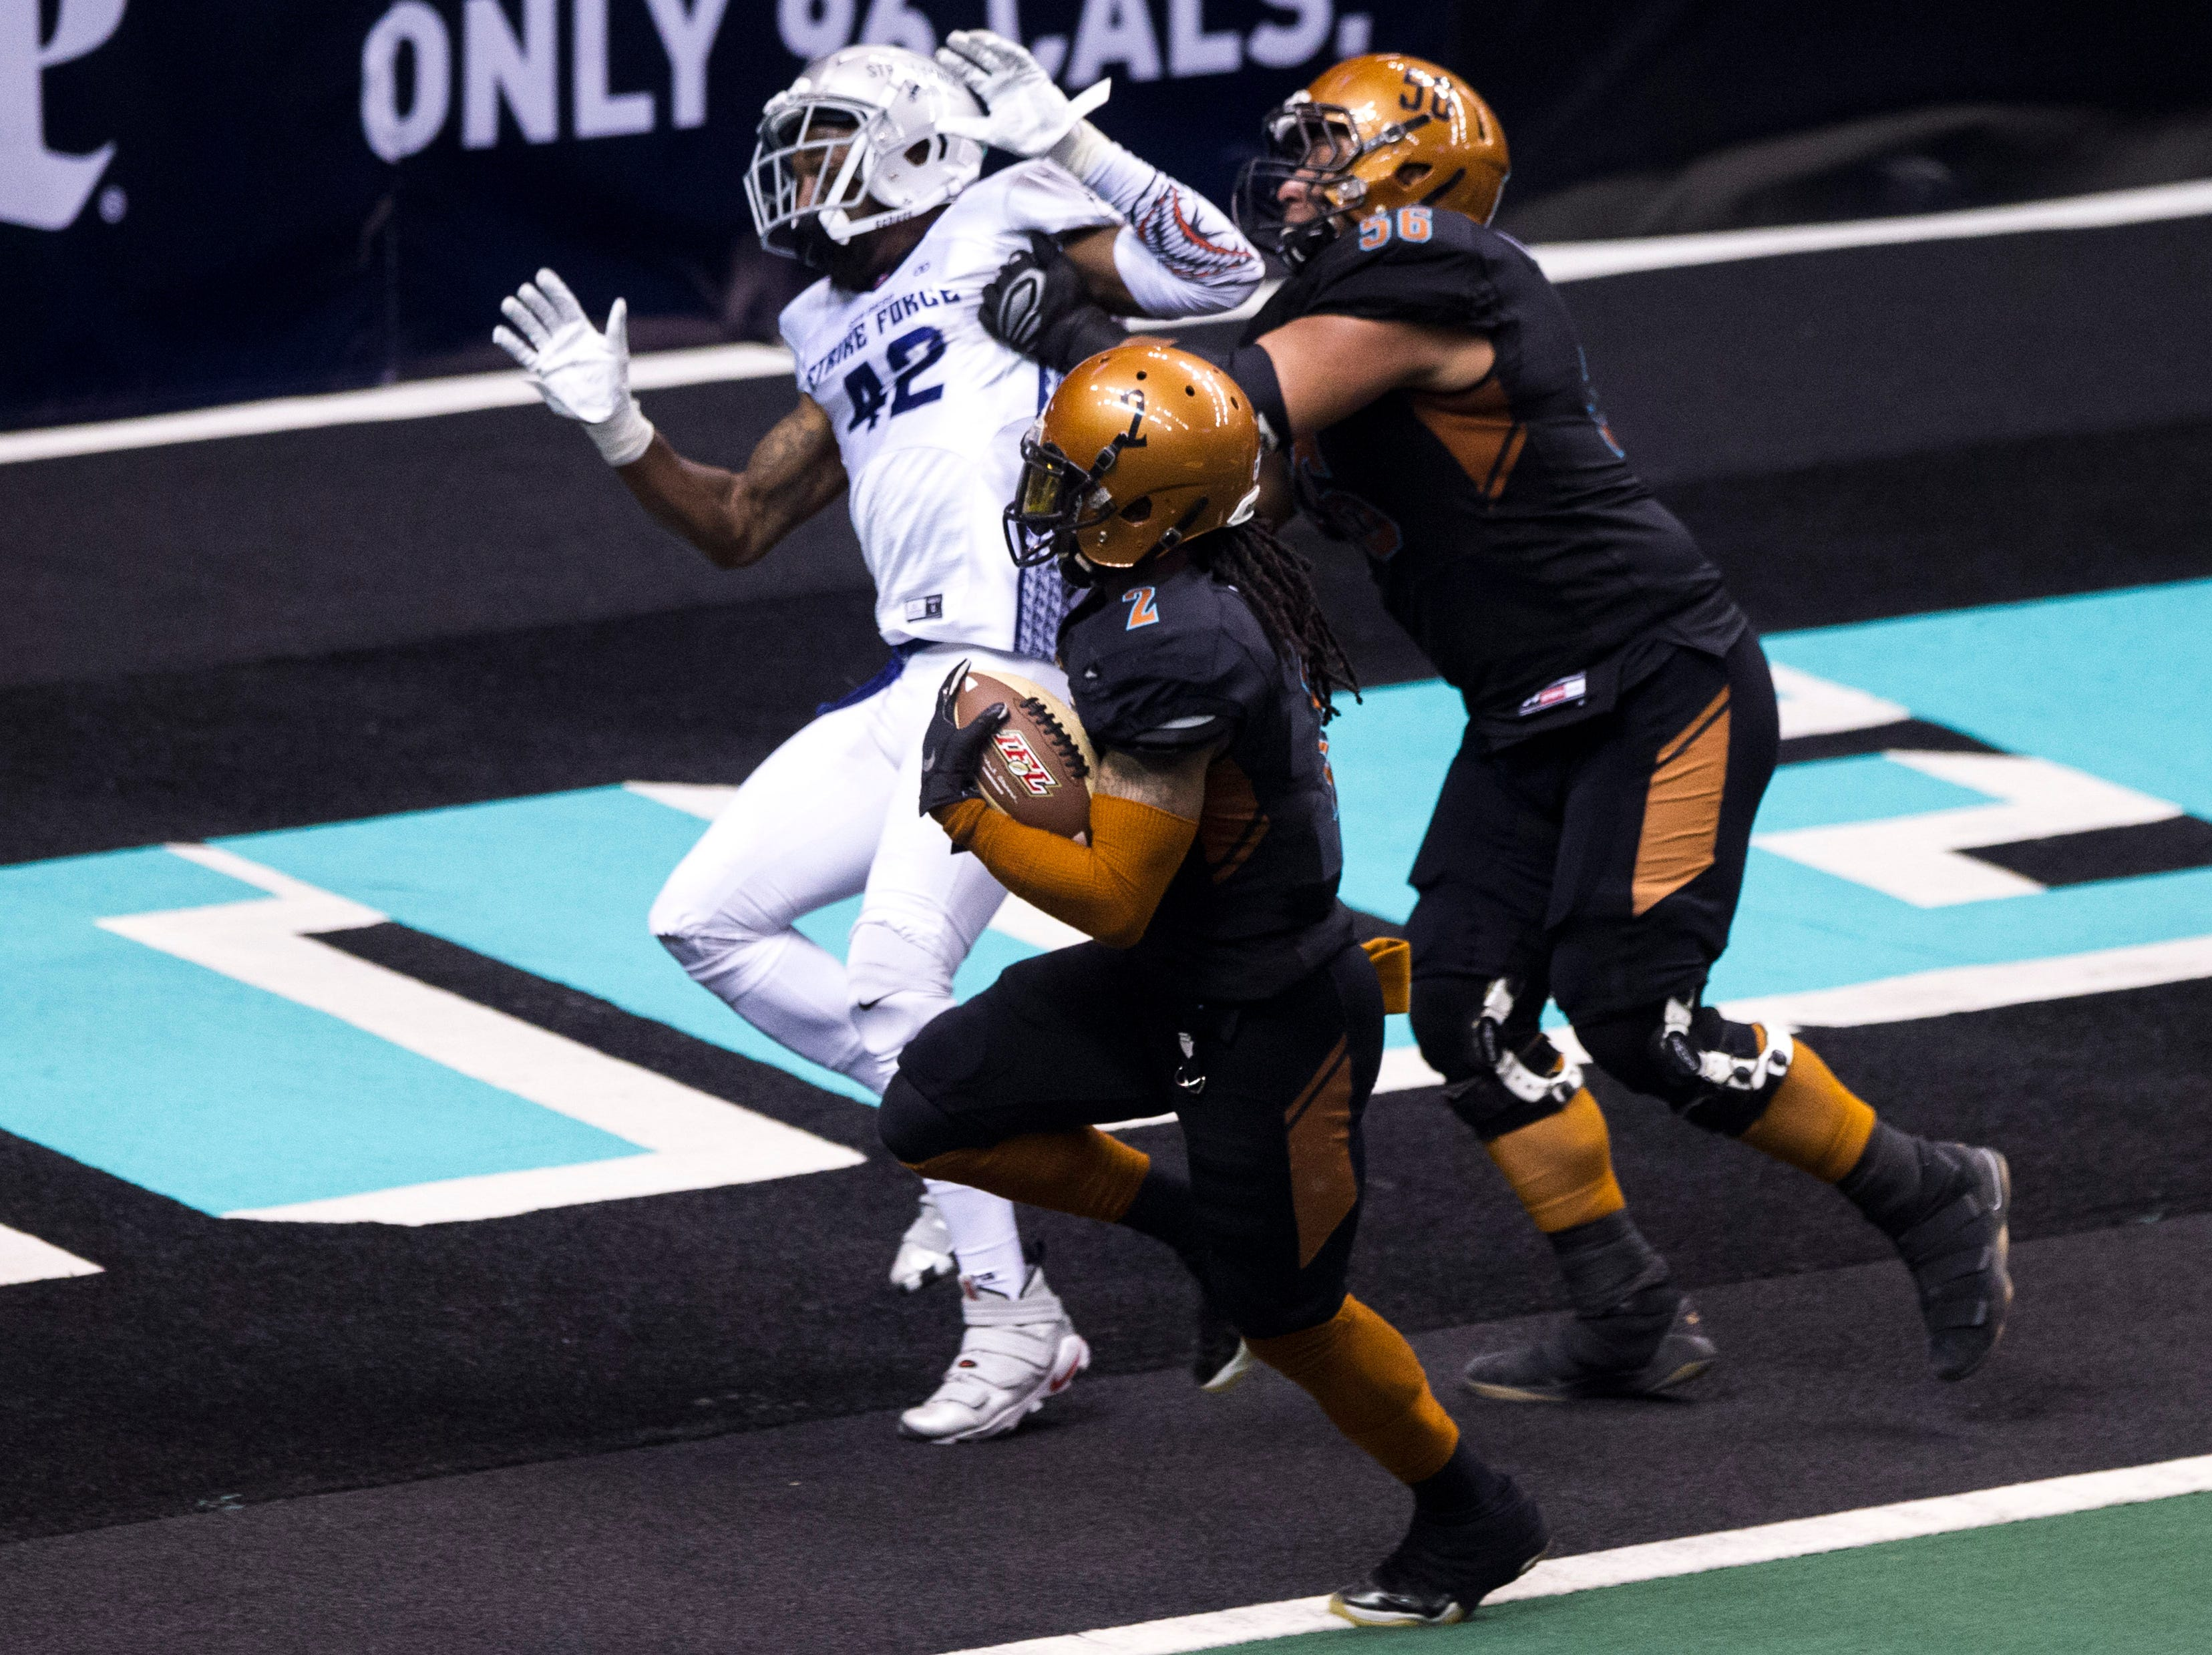 Arizona Rattlers' Jamal Miles (2) dances into the end zone against San Diego Strike Force in the first half of their game at Talking Stick Resort Arena in Phoenix Friday, April. 6, 2019.